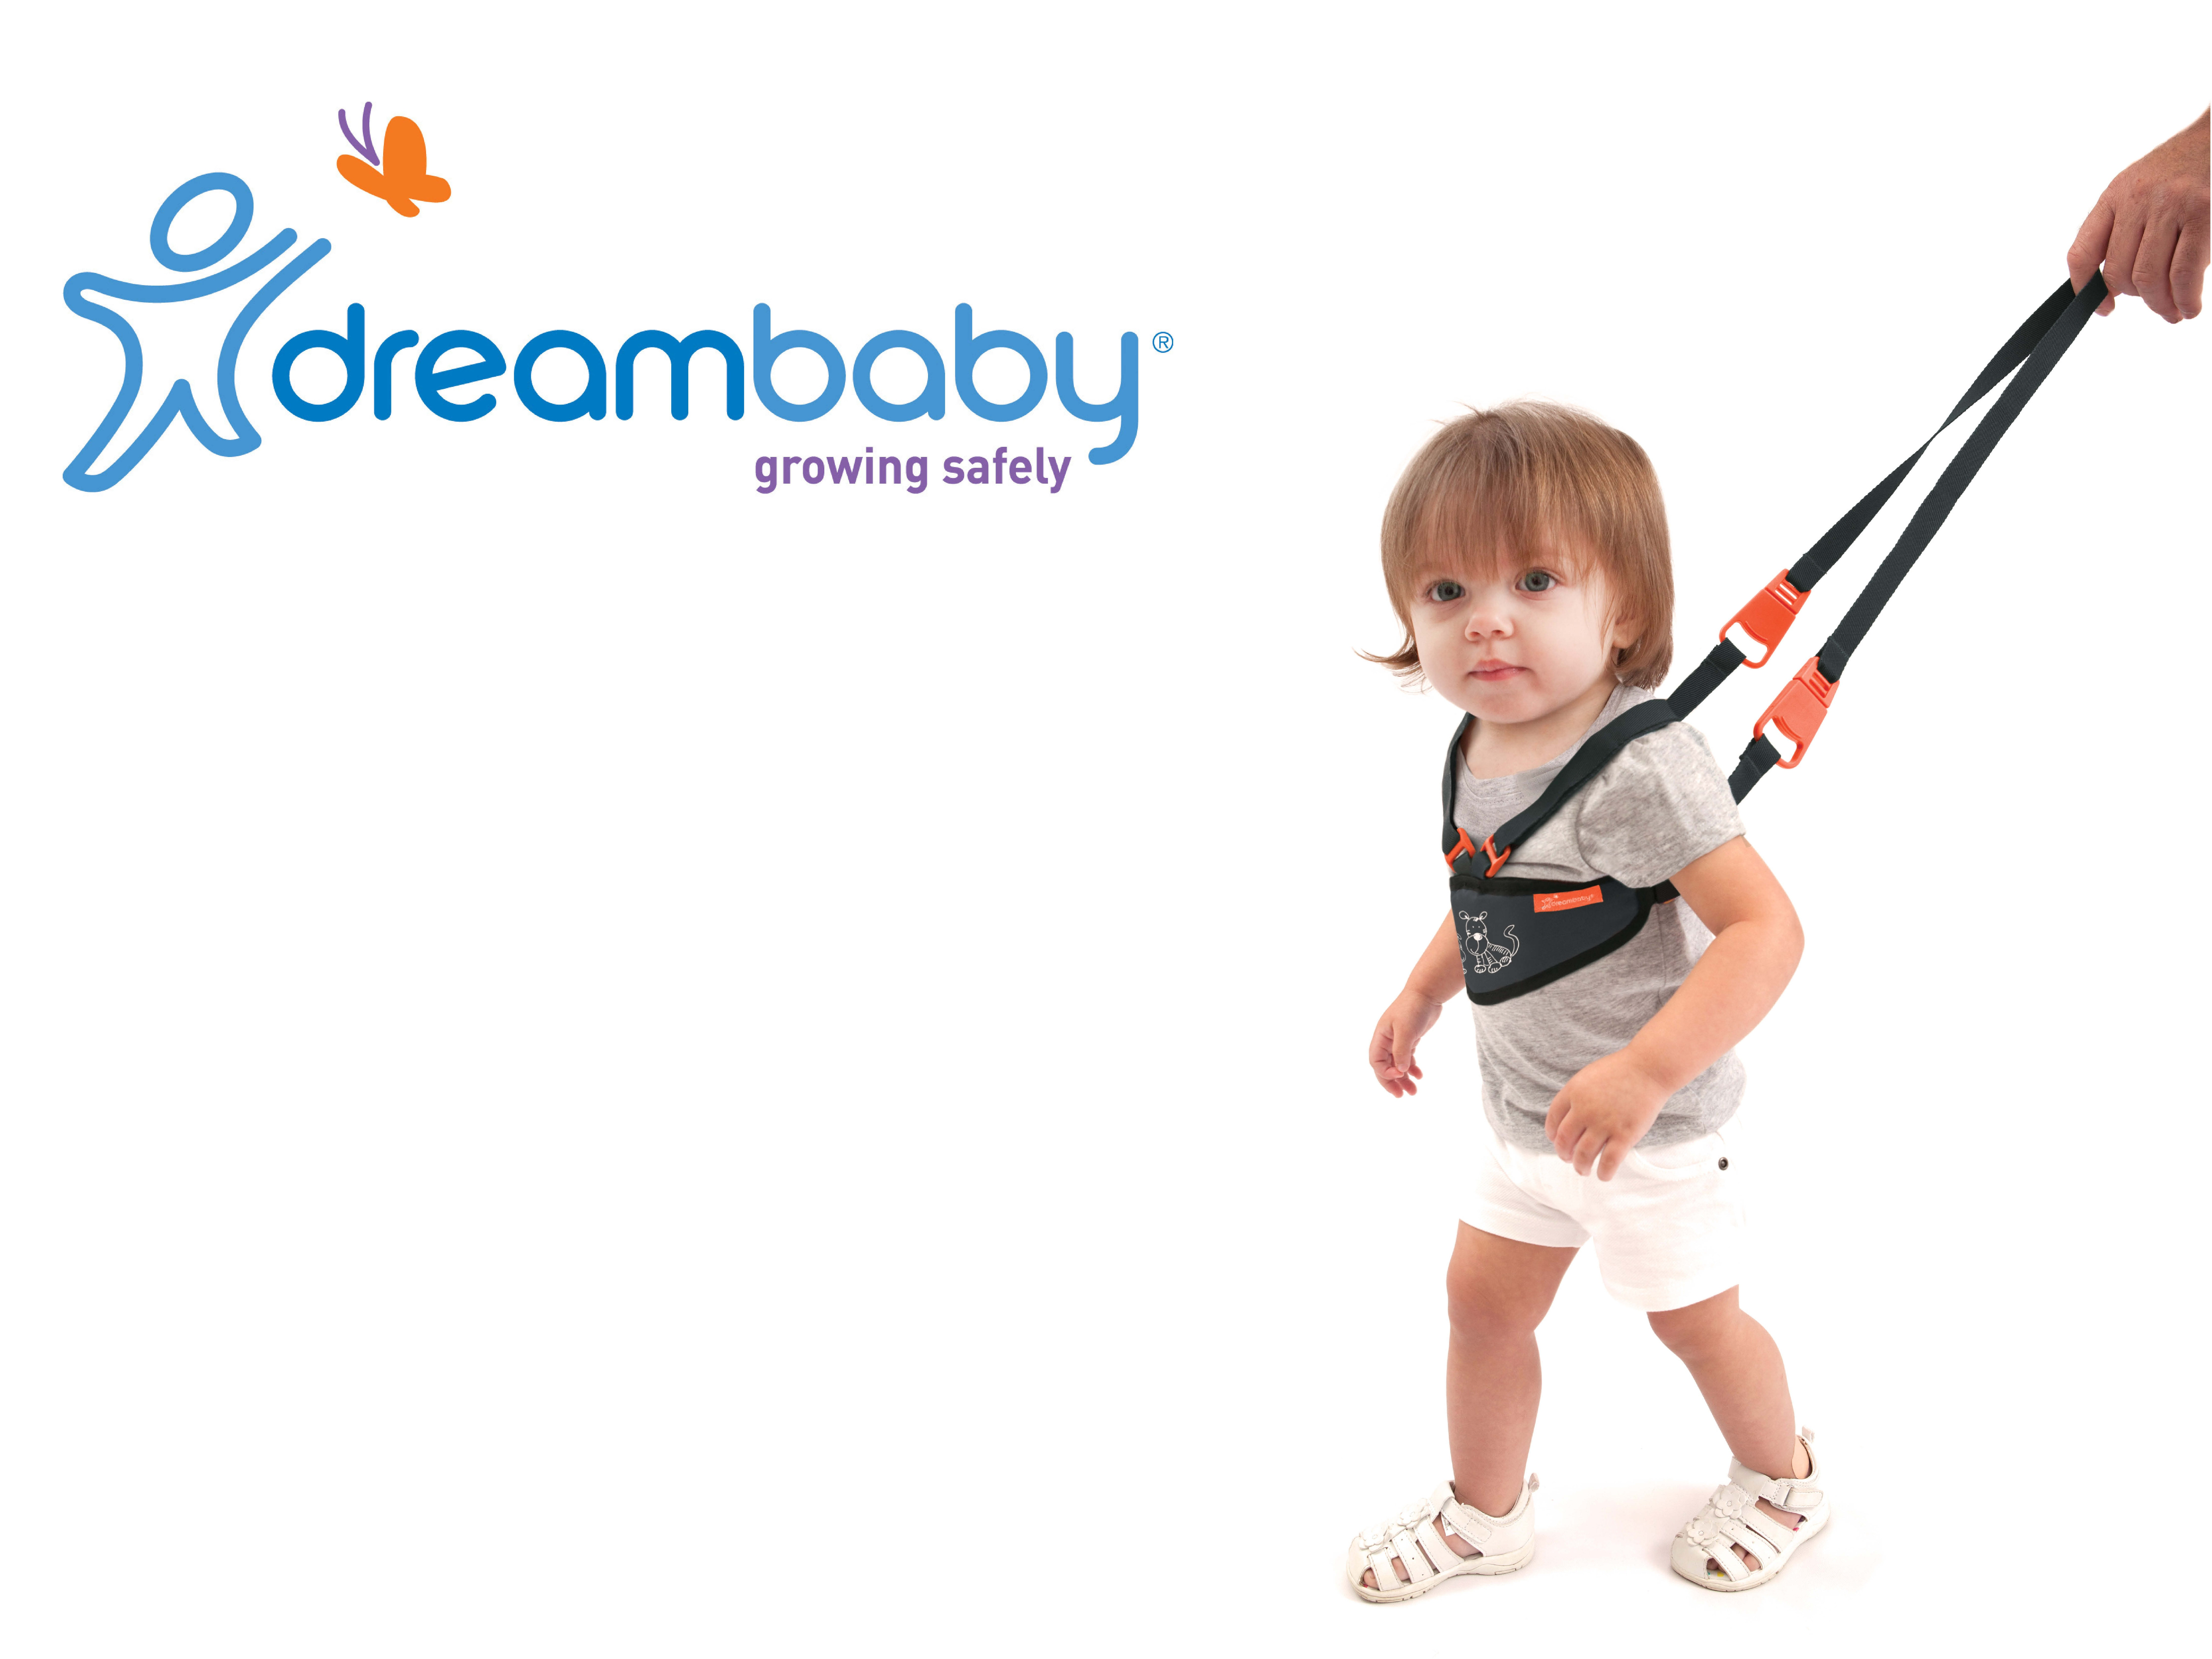 A DREAMBABY® ON-THE-GO PRIZE PACK sweepstakes